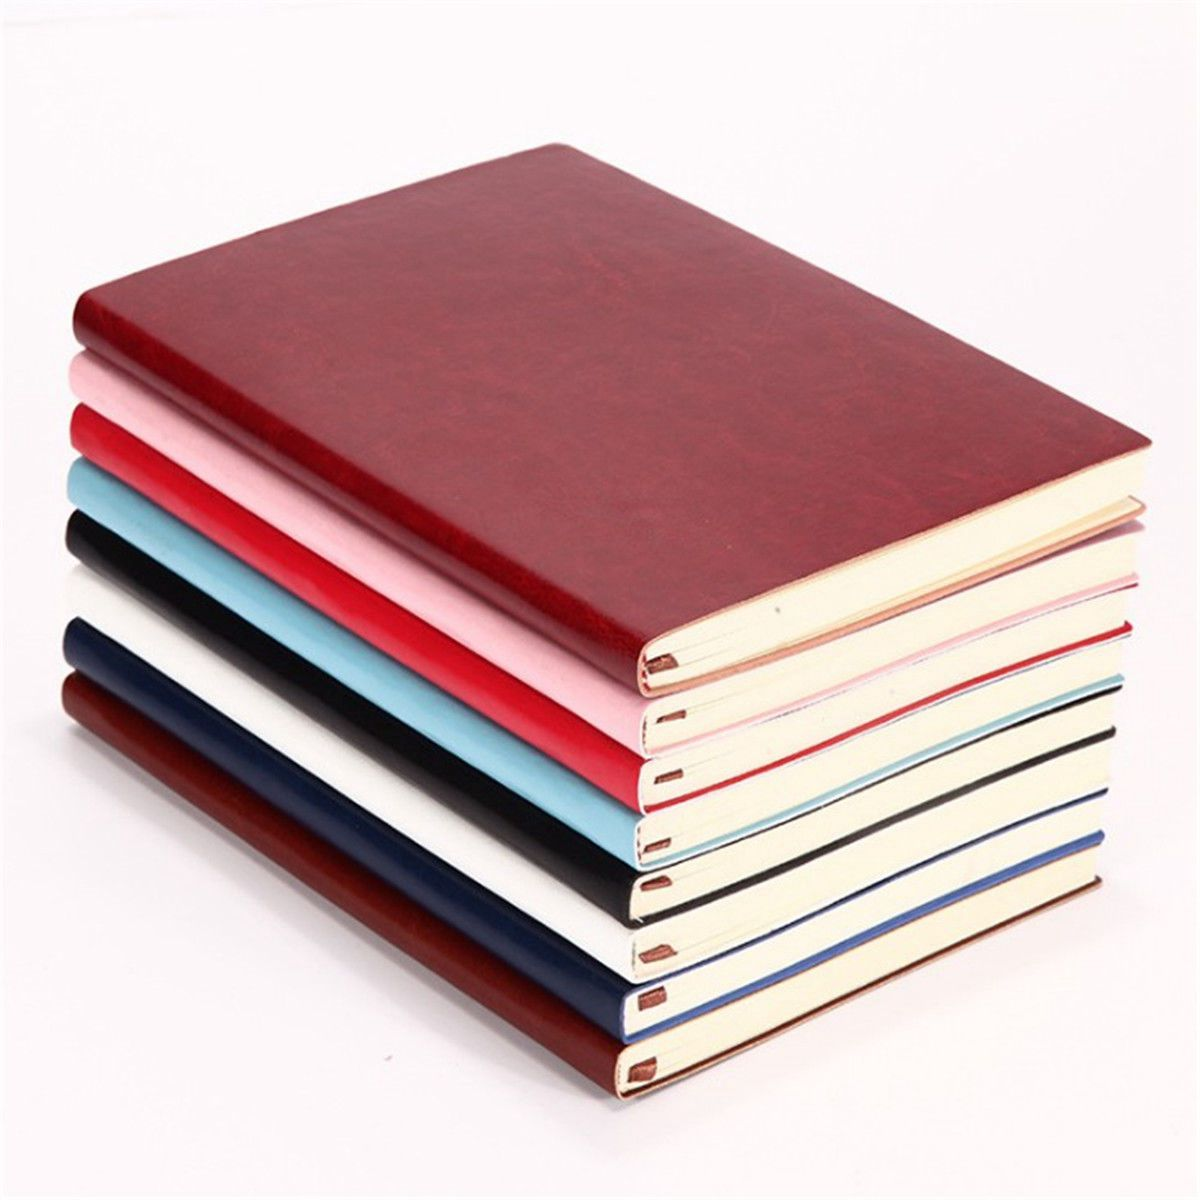 6 Color Random Soft Cover PU Leather Notebook Writing Journal 100 Page Lined Diary Book cancun page 6